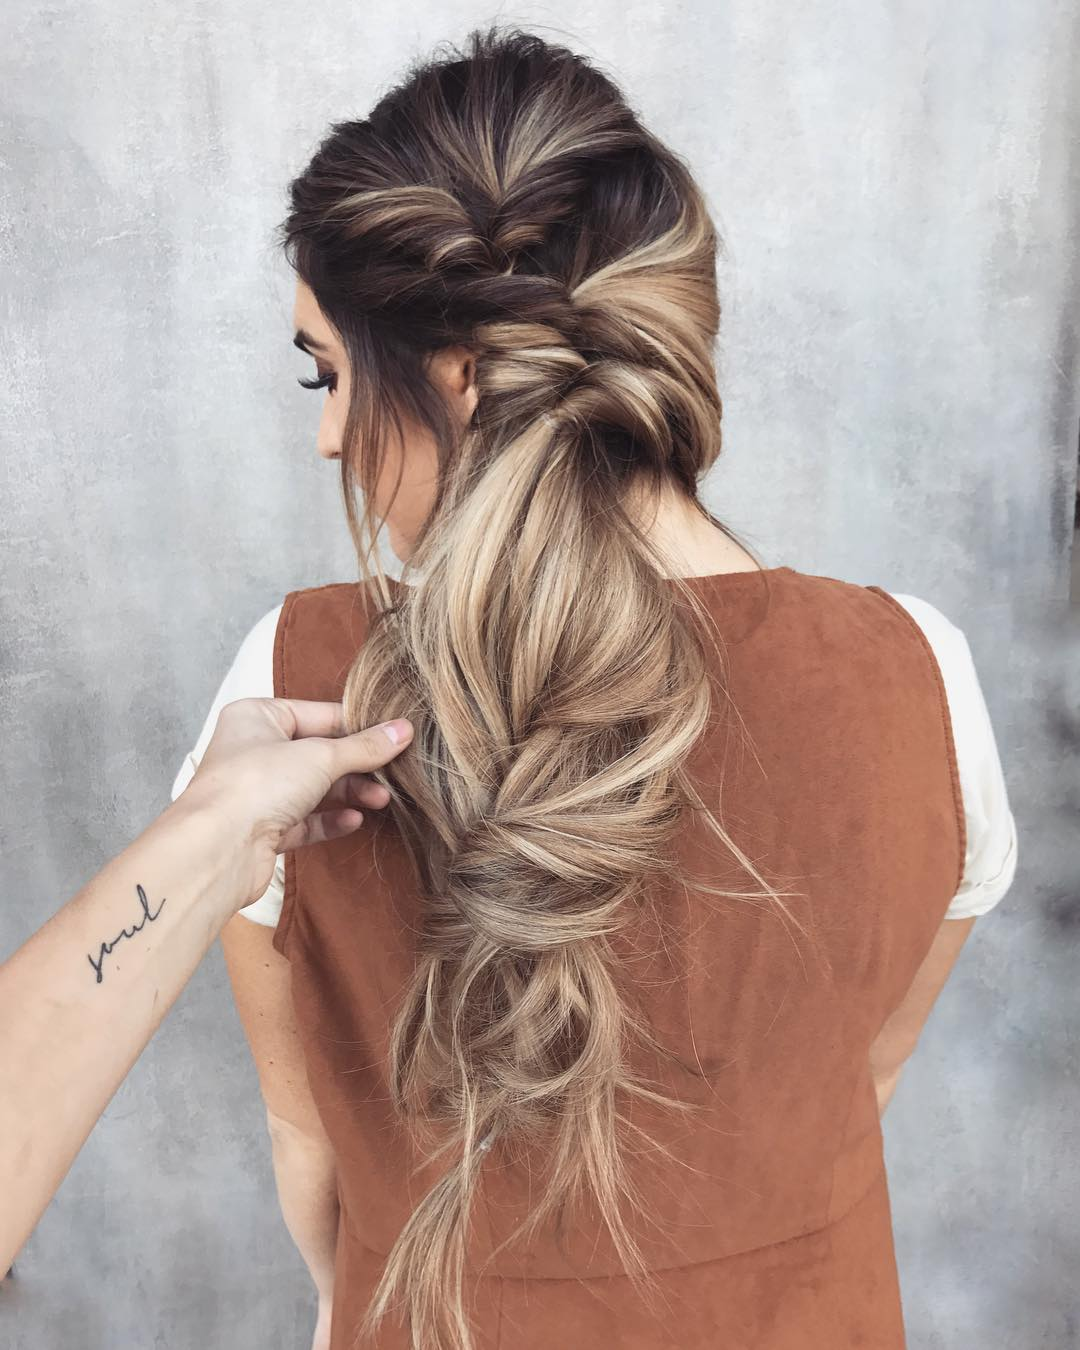 10 Messy Braided Long Hairstyle Ideas For Weddings